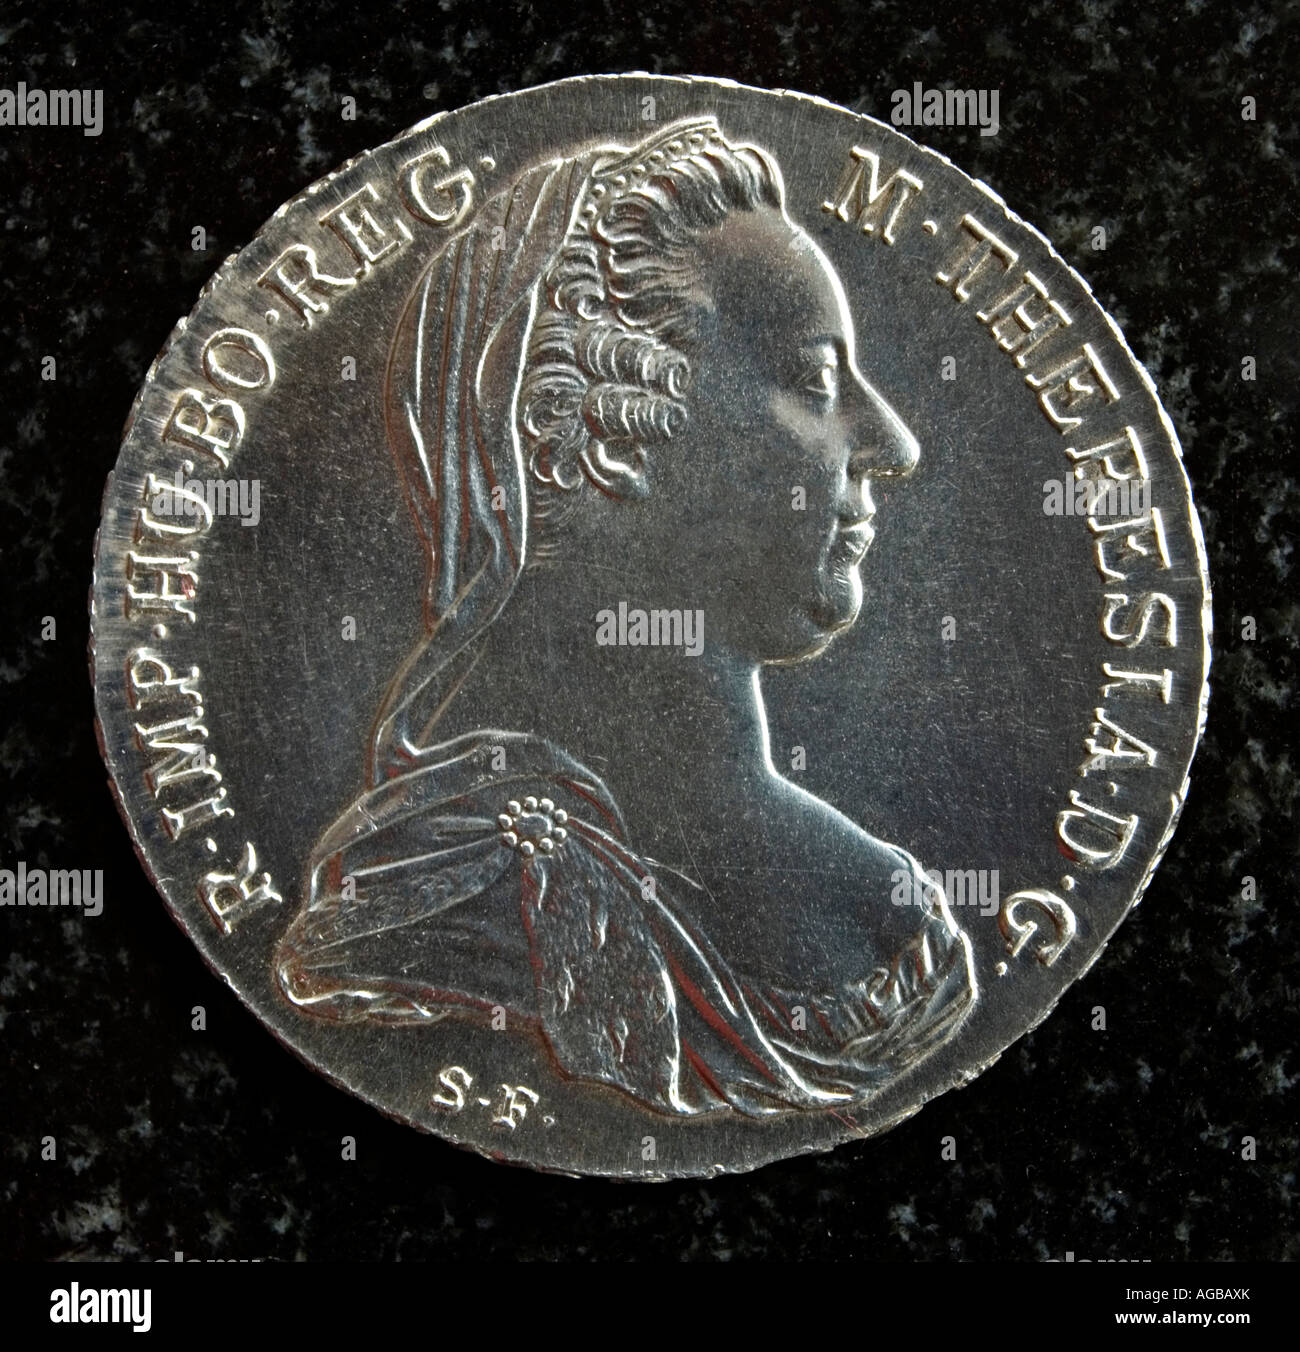 Maria Theresa silver Thaler (obverse / front) 1780 - restrike - Stock Image